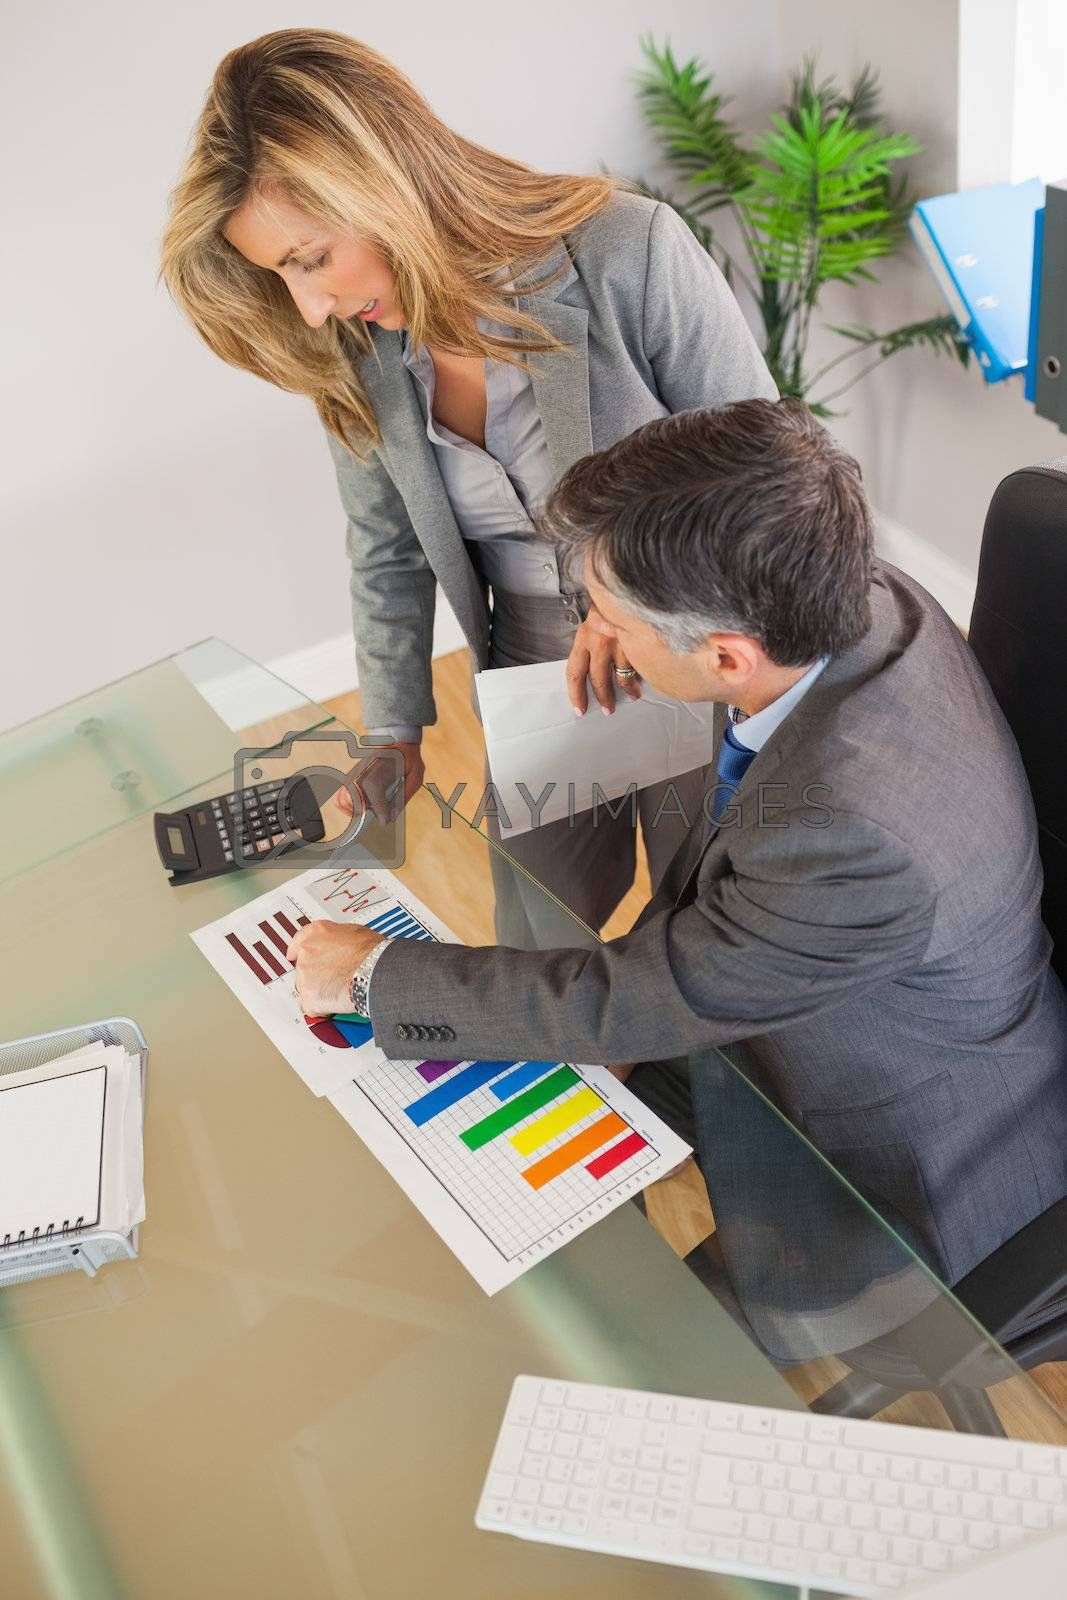 Two business people looking at documents in an office by Wavebreakmedia